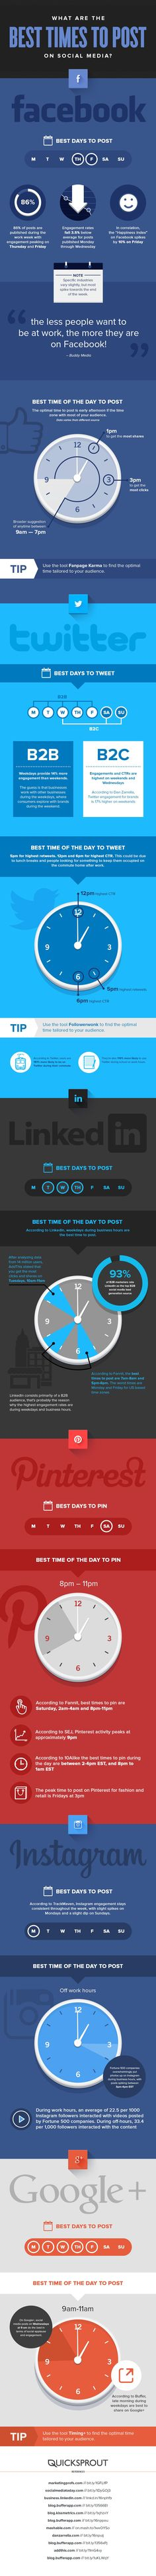 What Are The Best Times to Post on Social Media Profiles - for small businesses, companies and brands. Updated 2015 version!